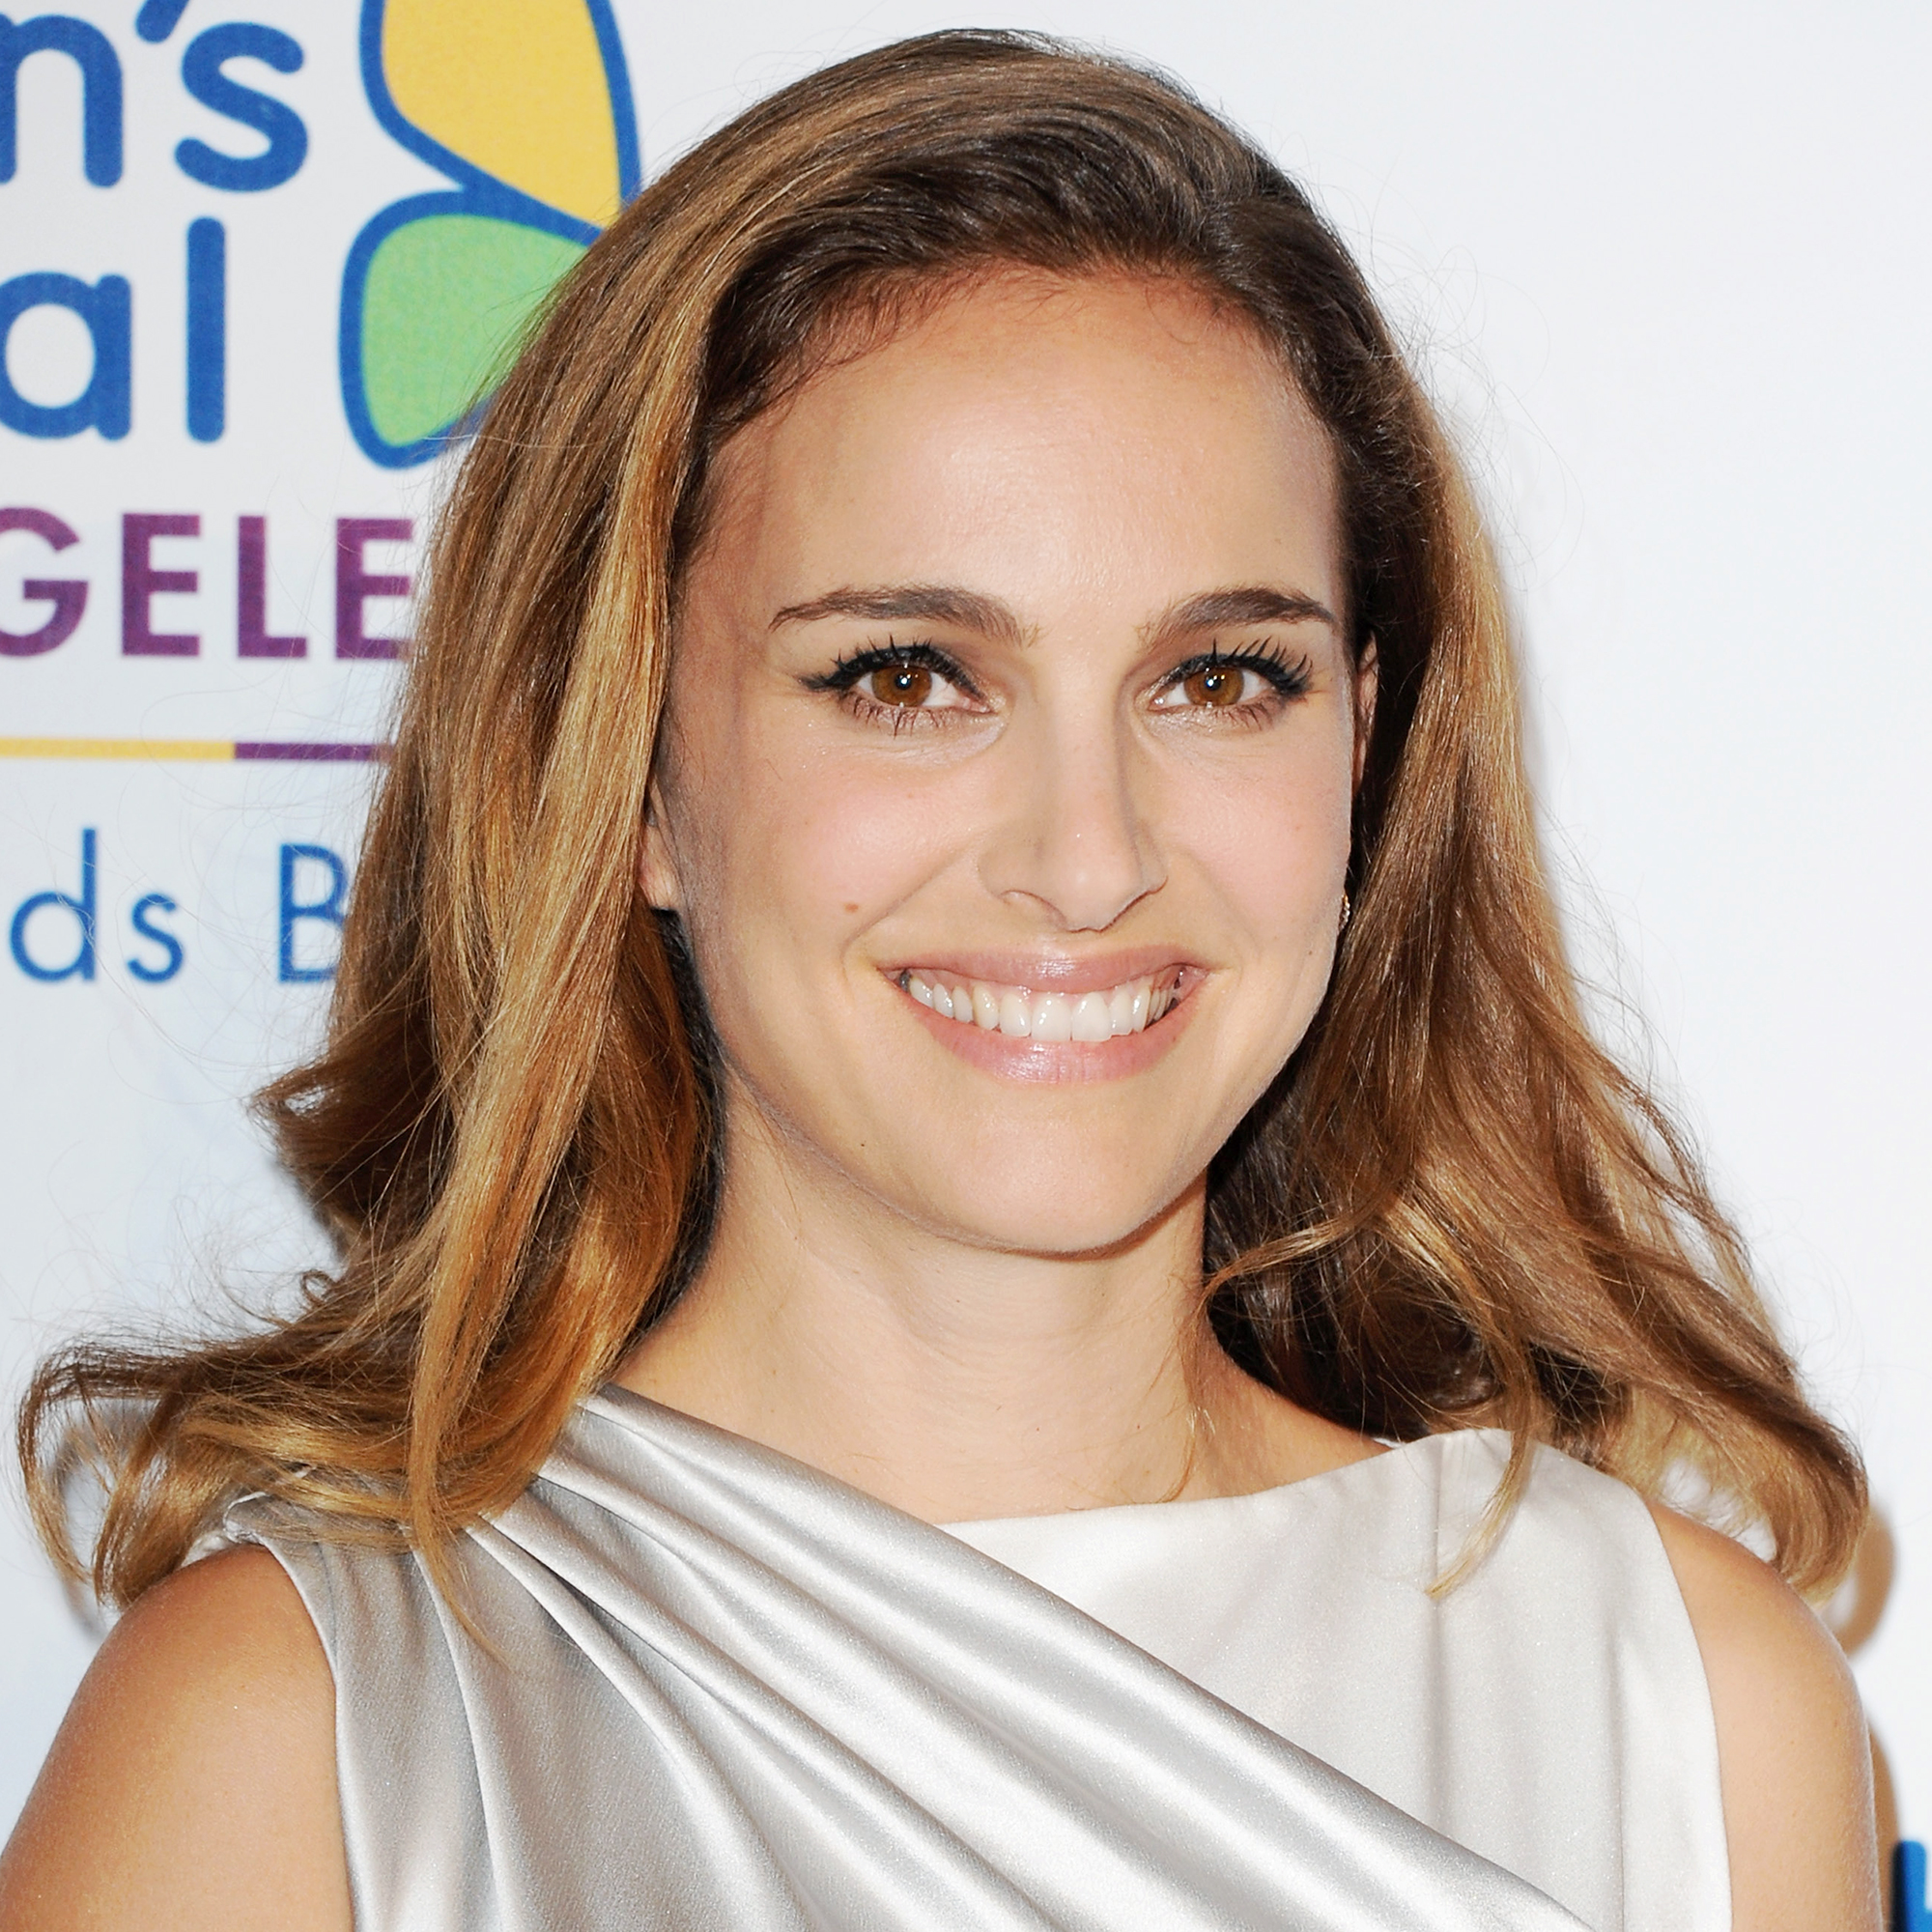 Actress Natalie Portman arrives at the Children's Hospital Los Angeles Gala Noche de Ninos at L.A. Live Event Deck on October 11, 2014 in Los Angeles, California.